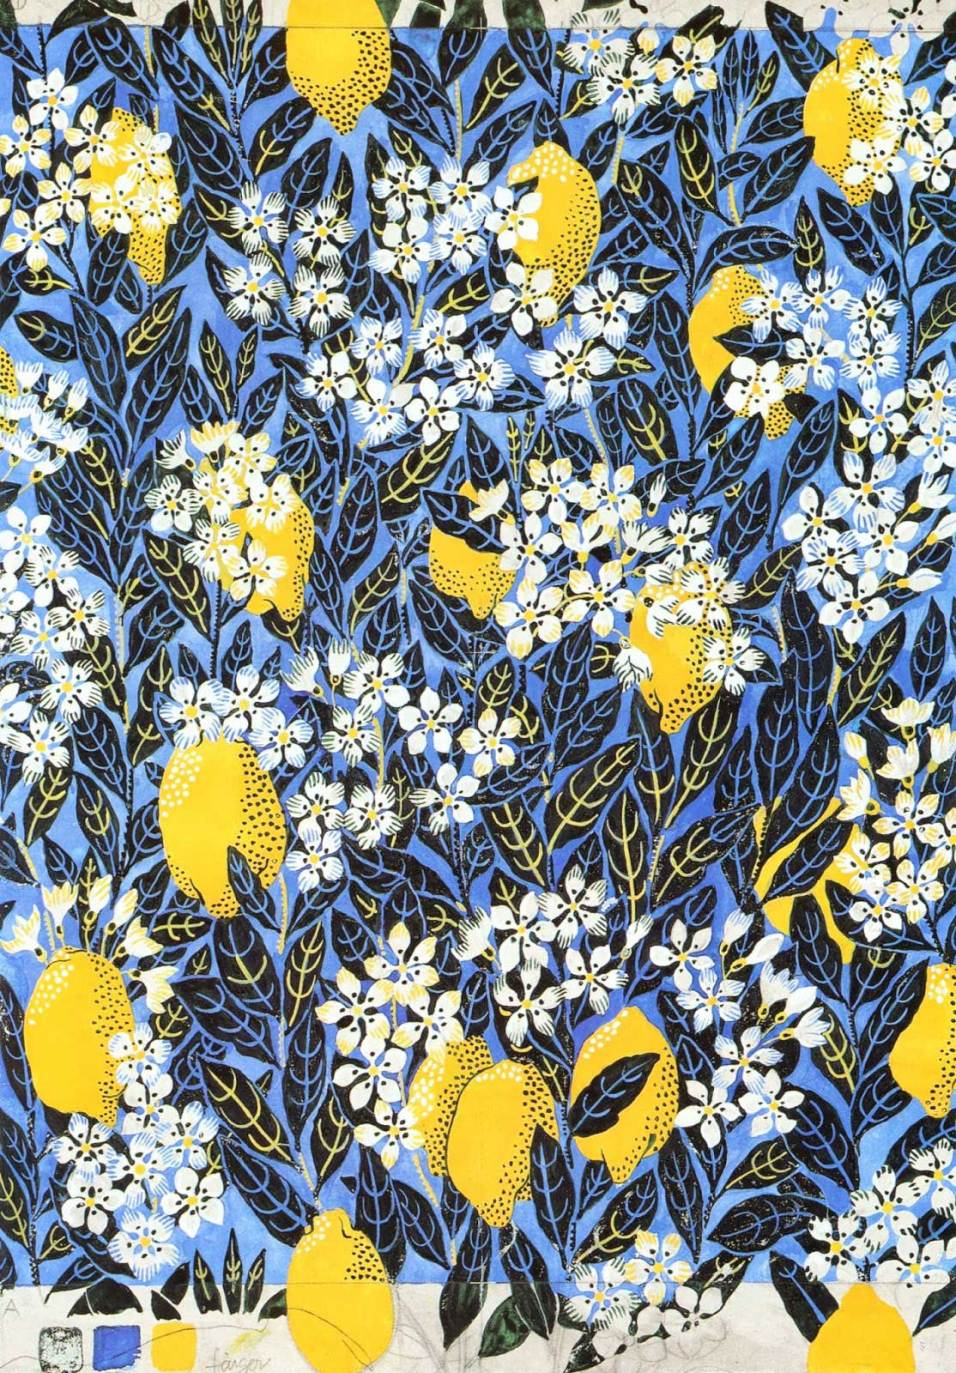 Master Drawing for Mignon by Josef Frank Published in Kristina Wängberg-Eriksson's Book Josef Frank: Textile Designs (2007)